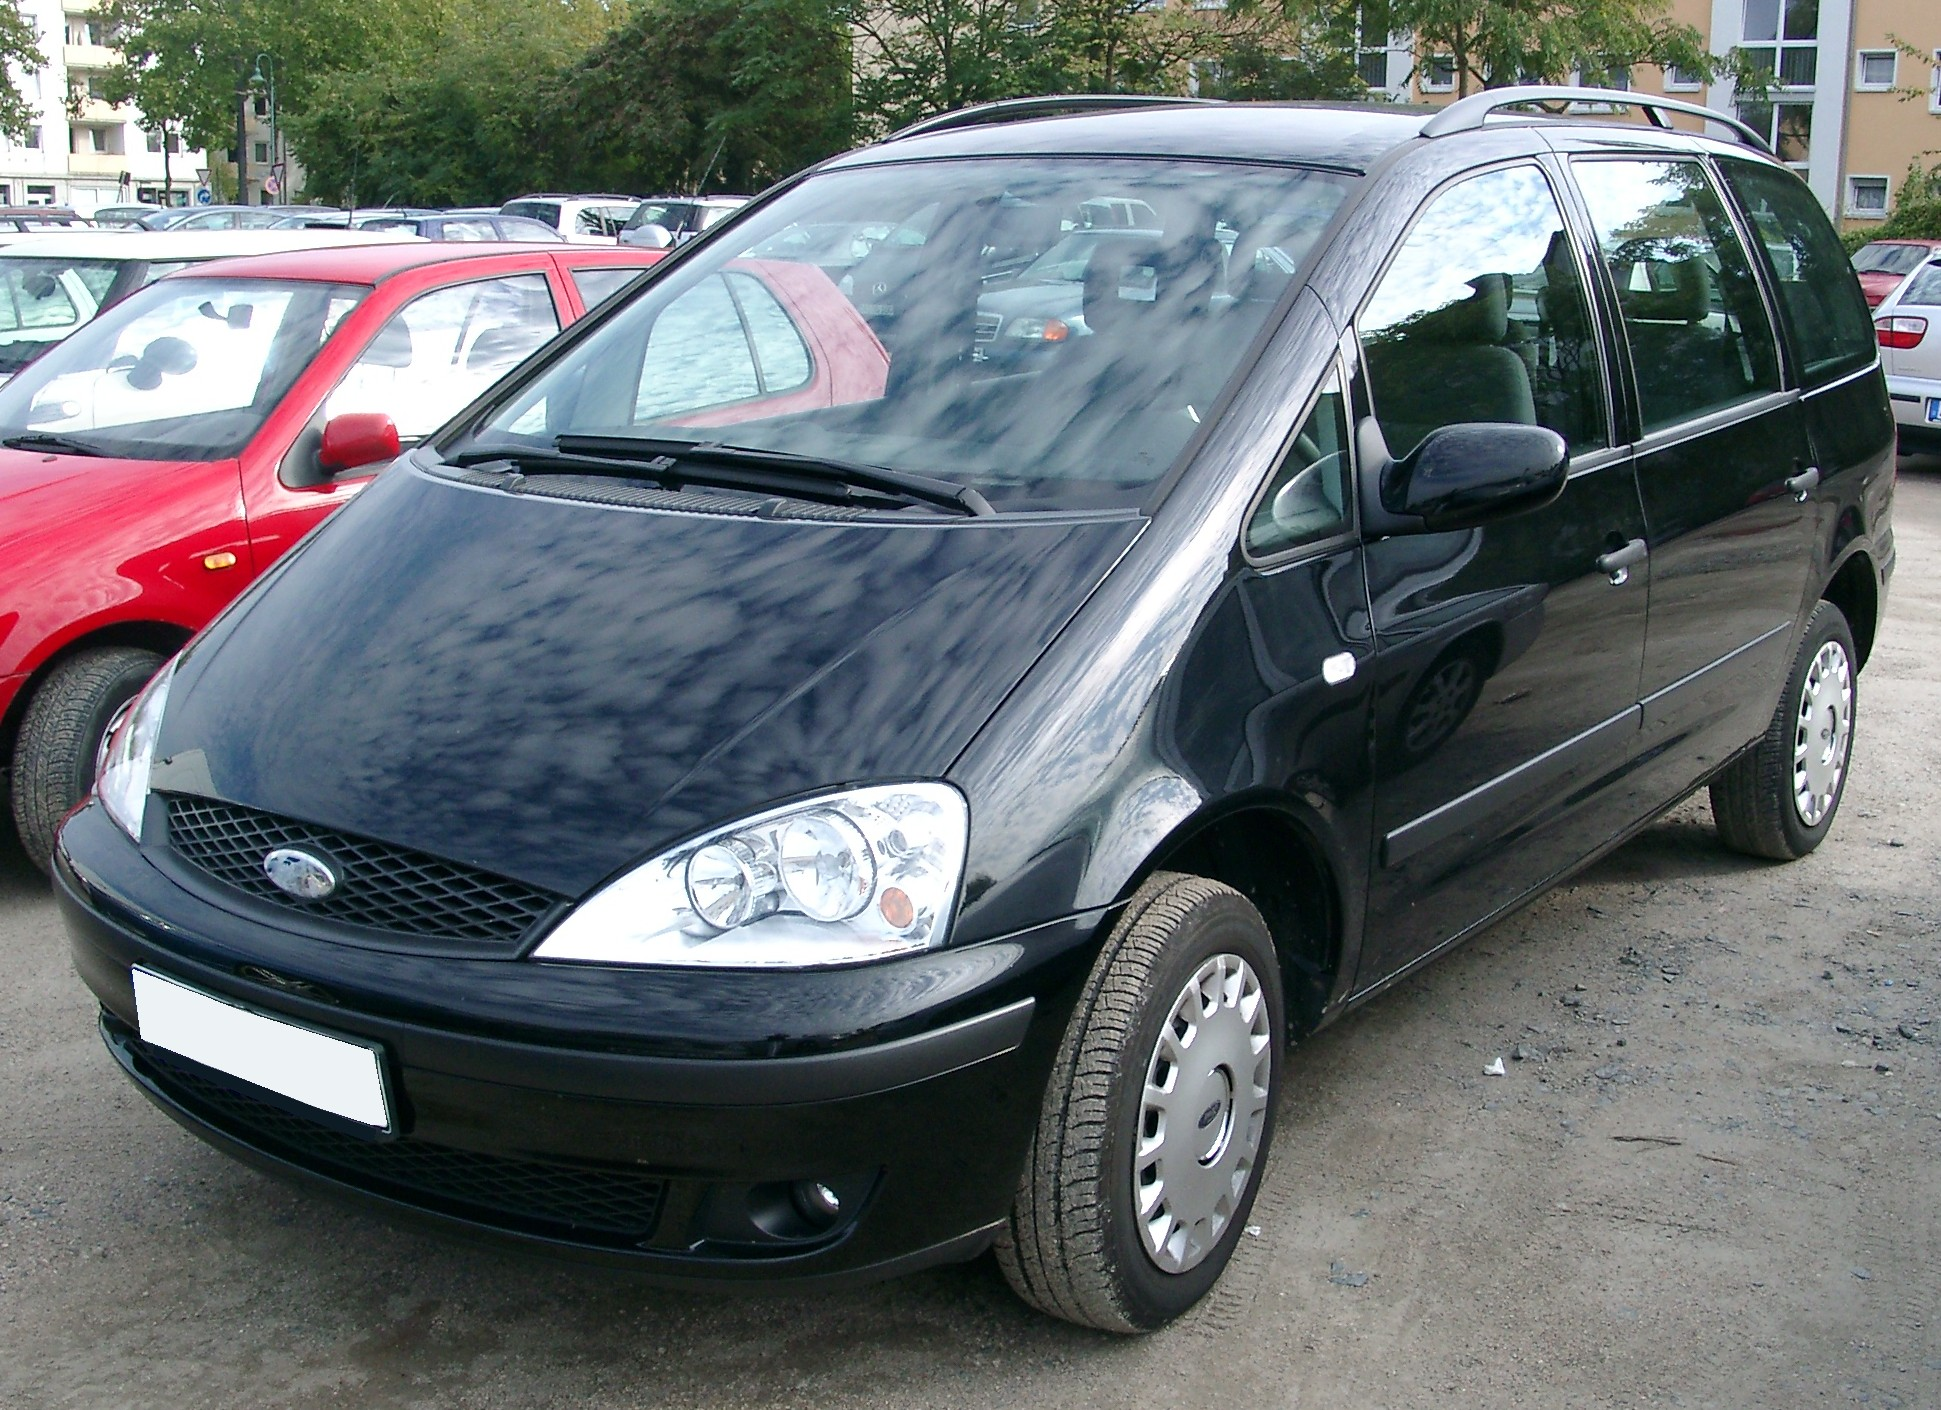 Ford galaxy 2 2007 images 11